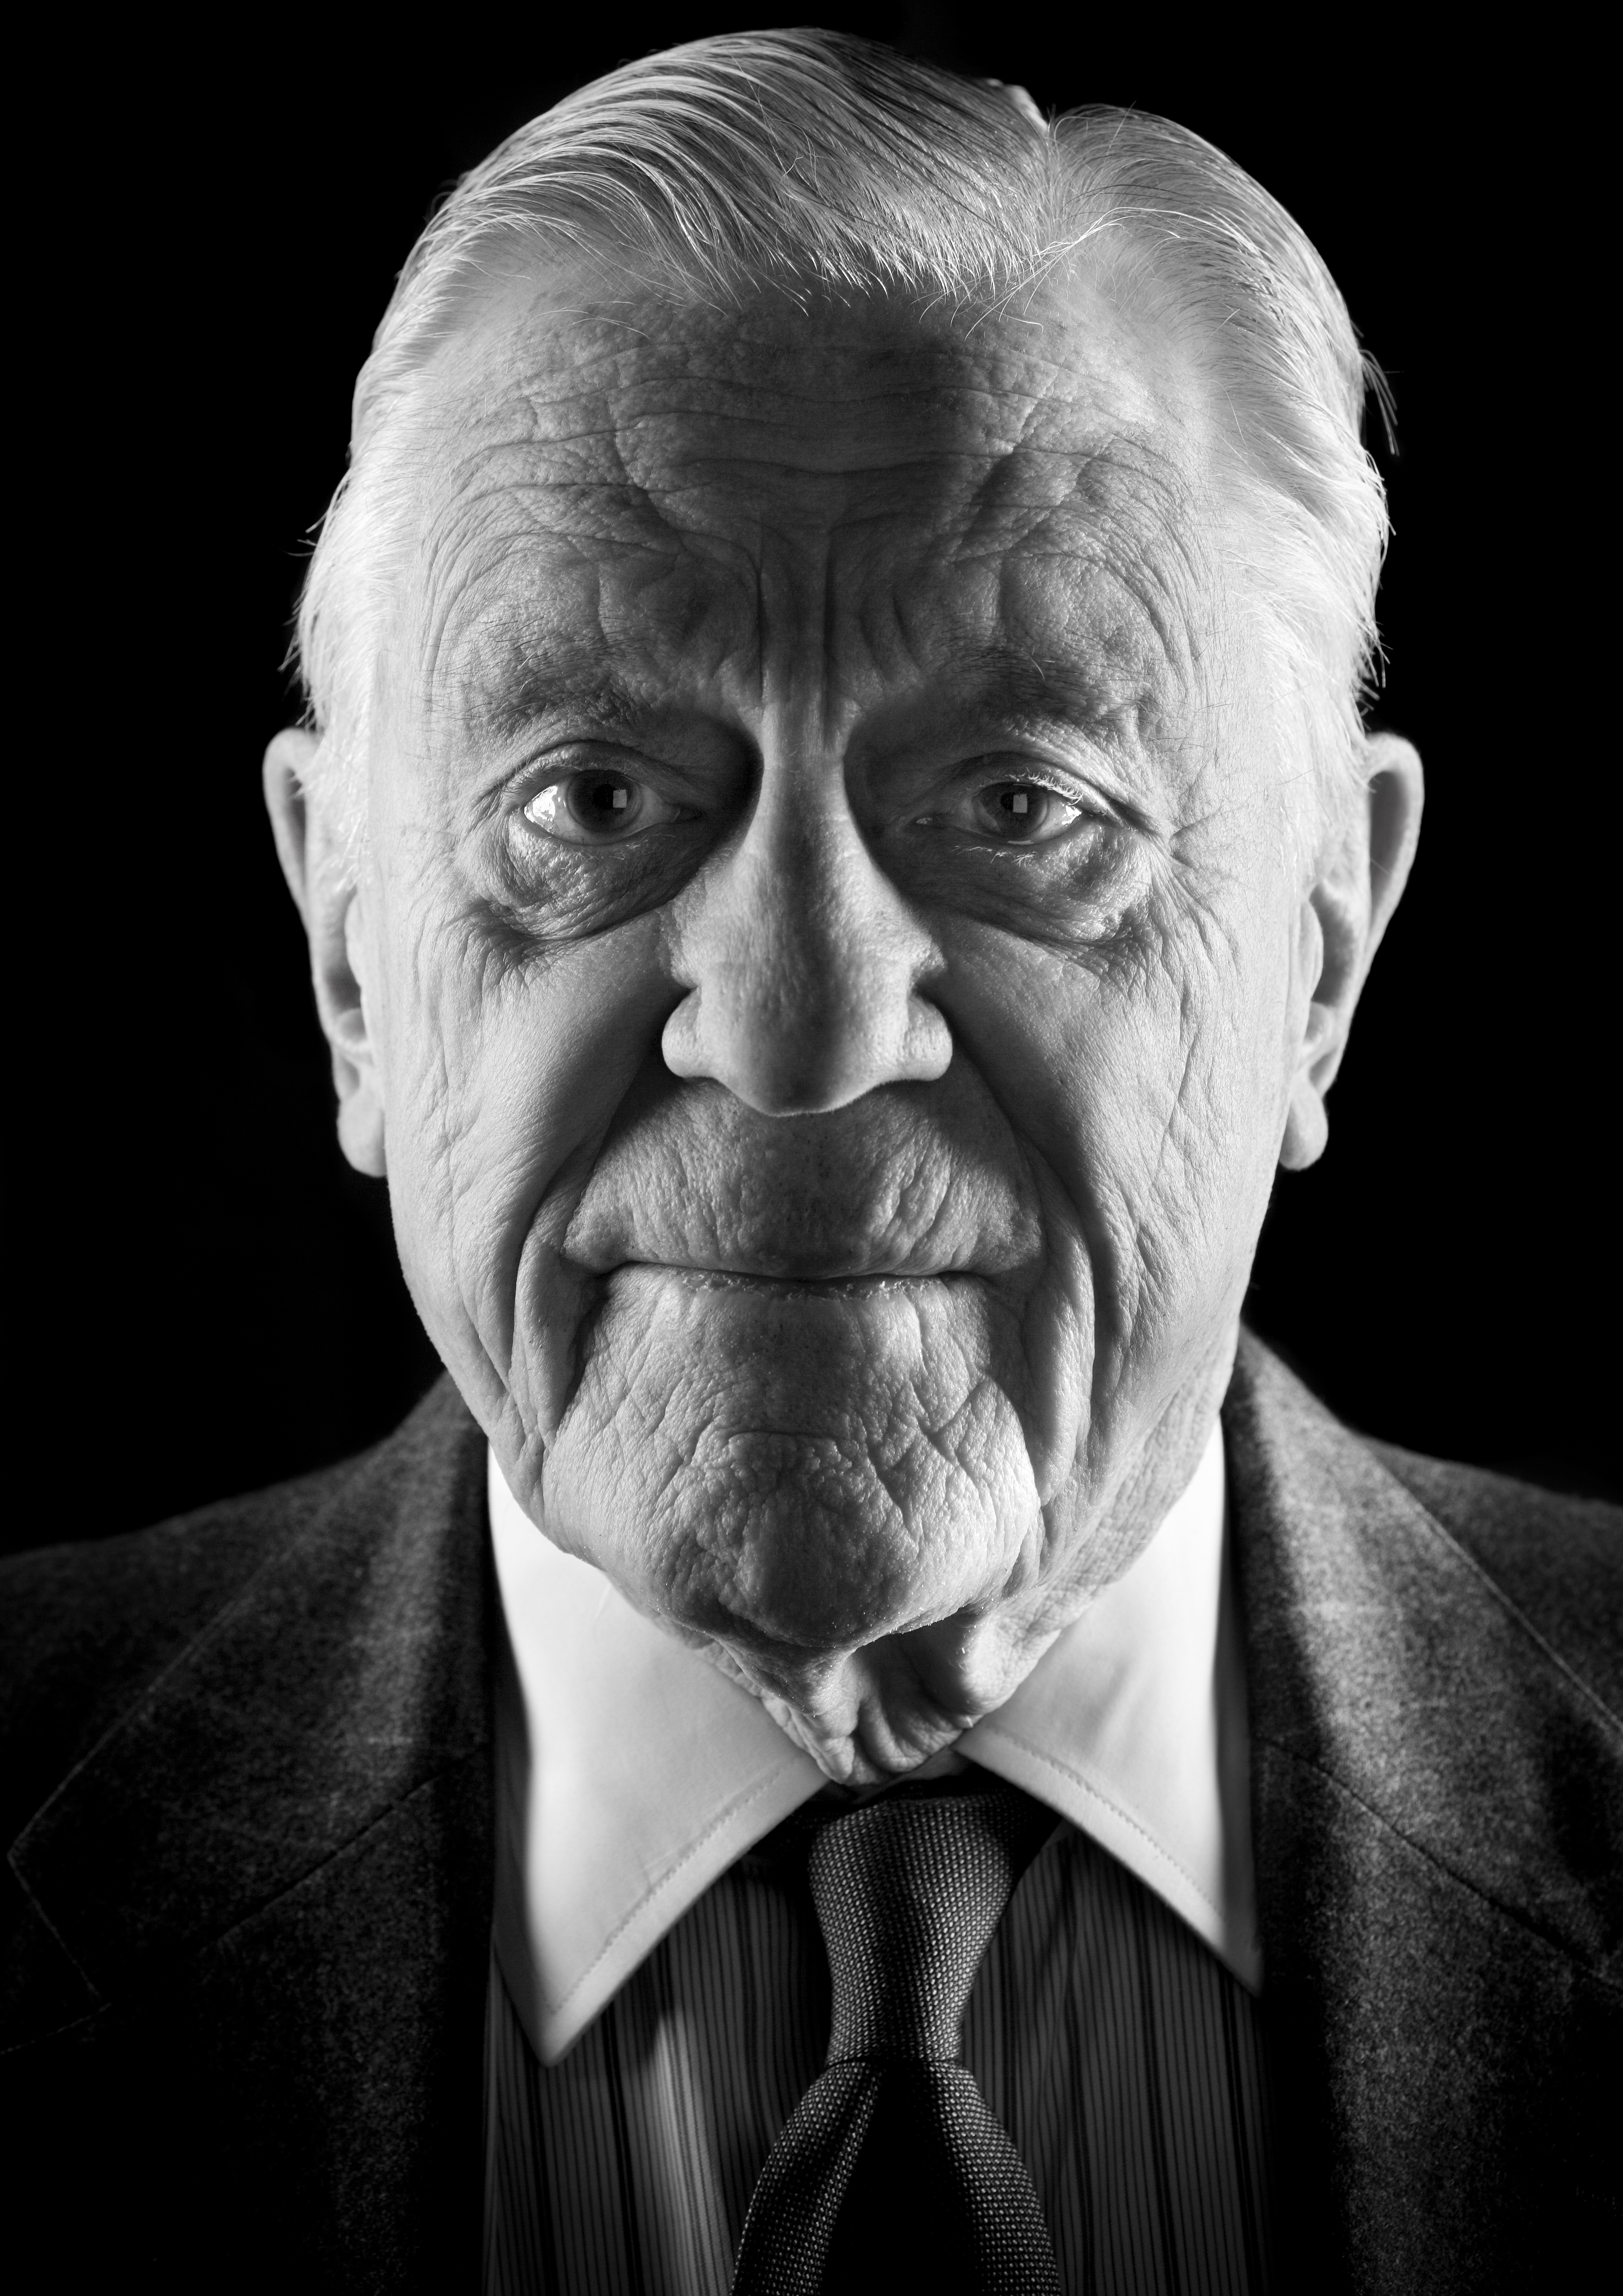 Ben Bradlee - The Washington Post